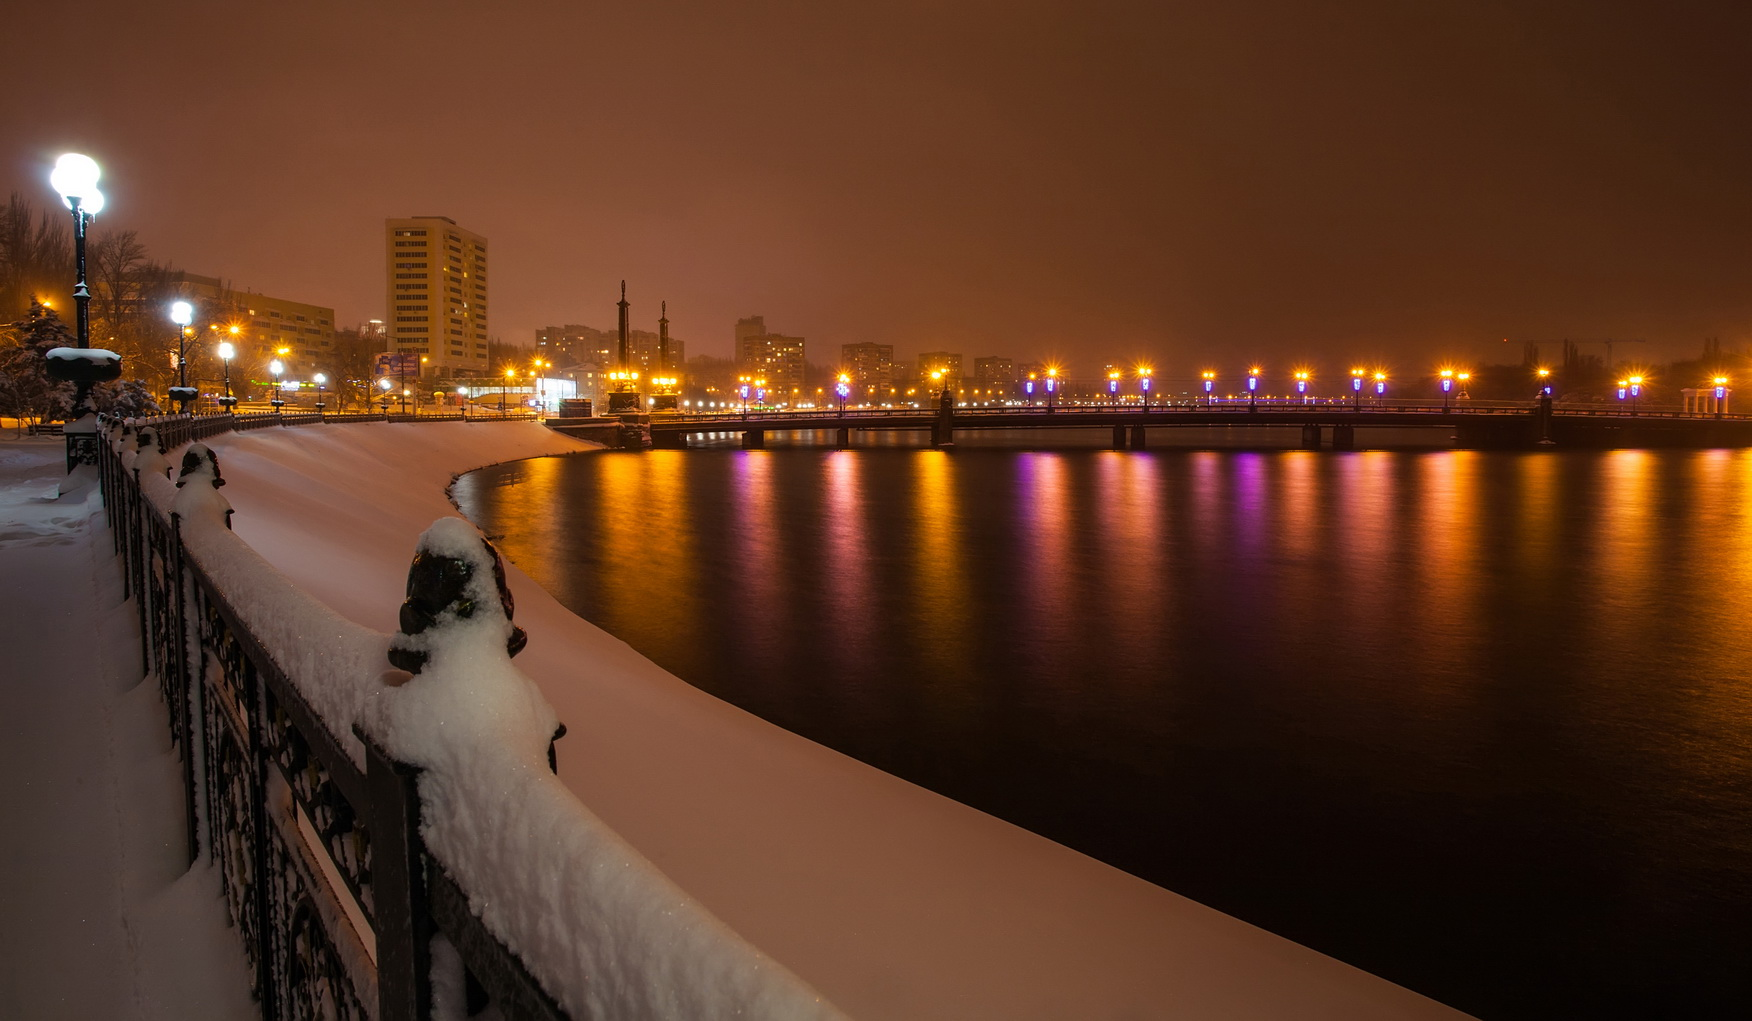 Winter embankment. Alexander Ryzhkov